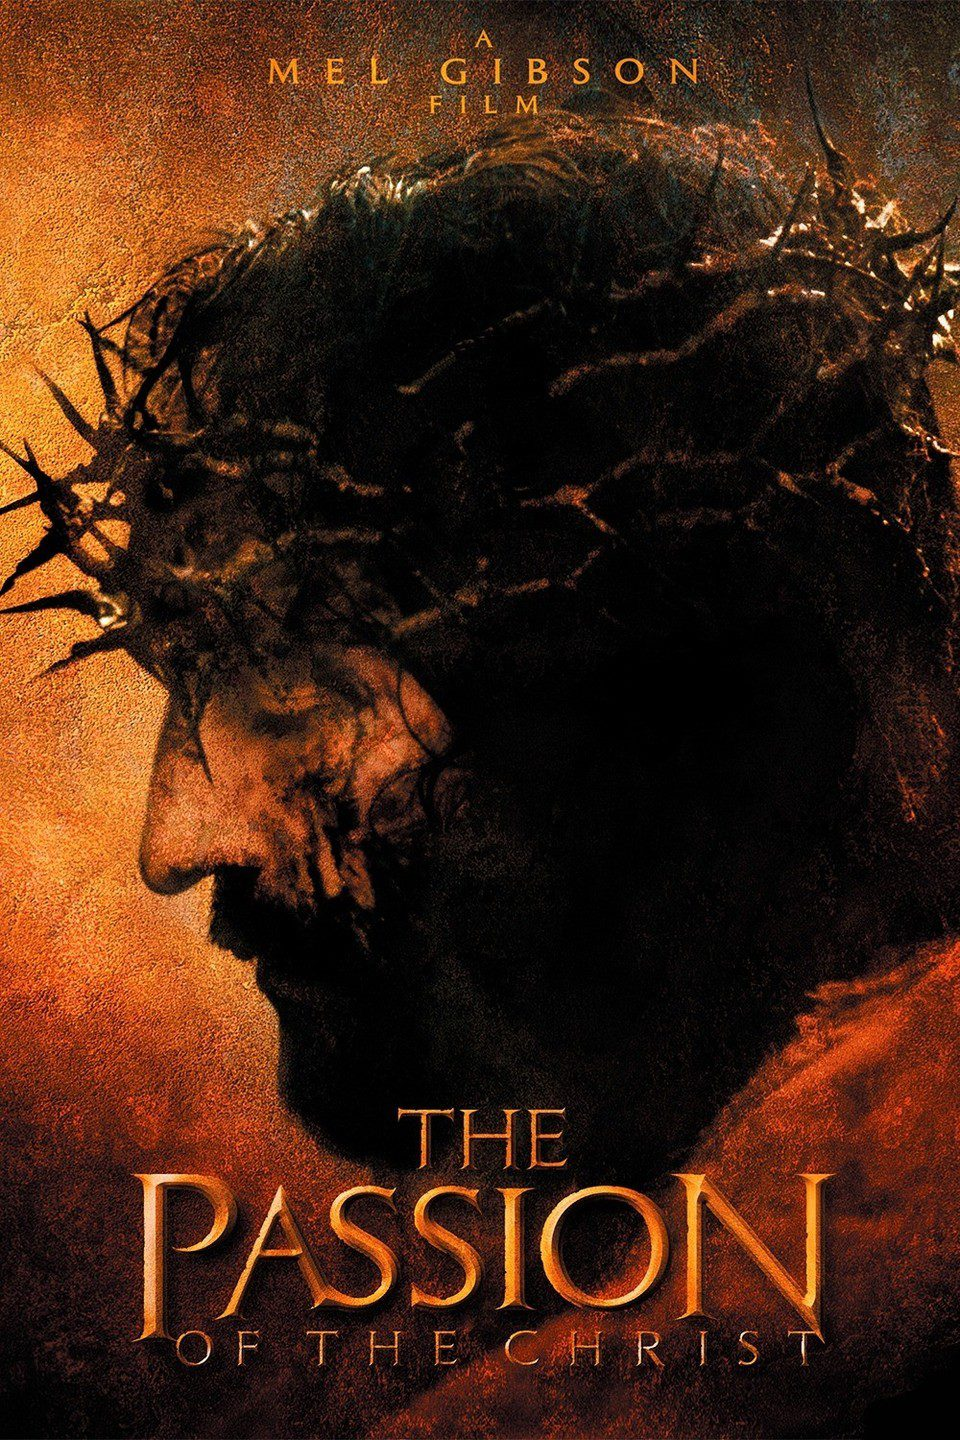 EEUU poster for The Passion of the Christ